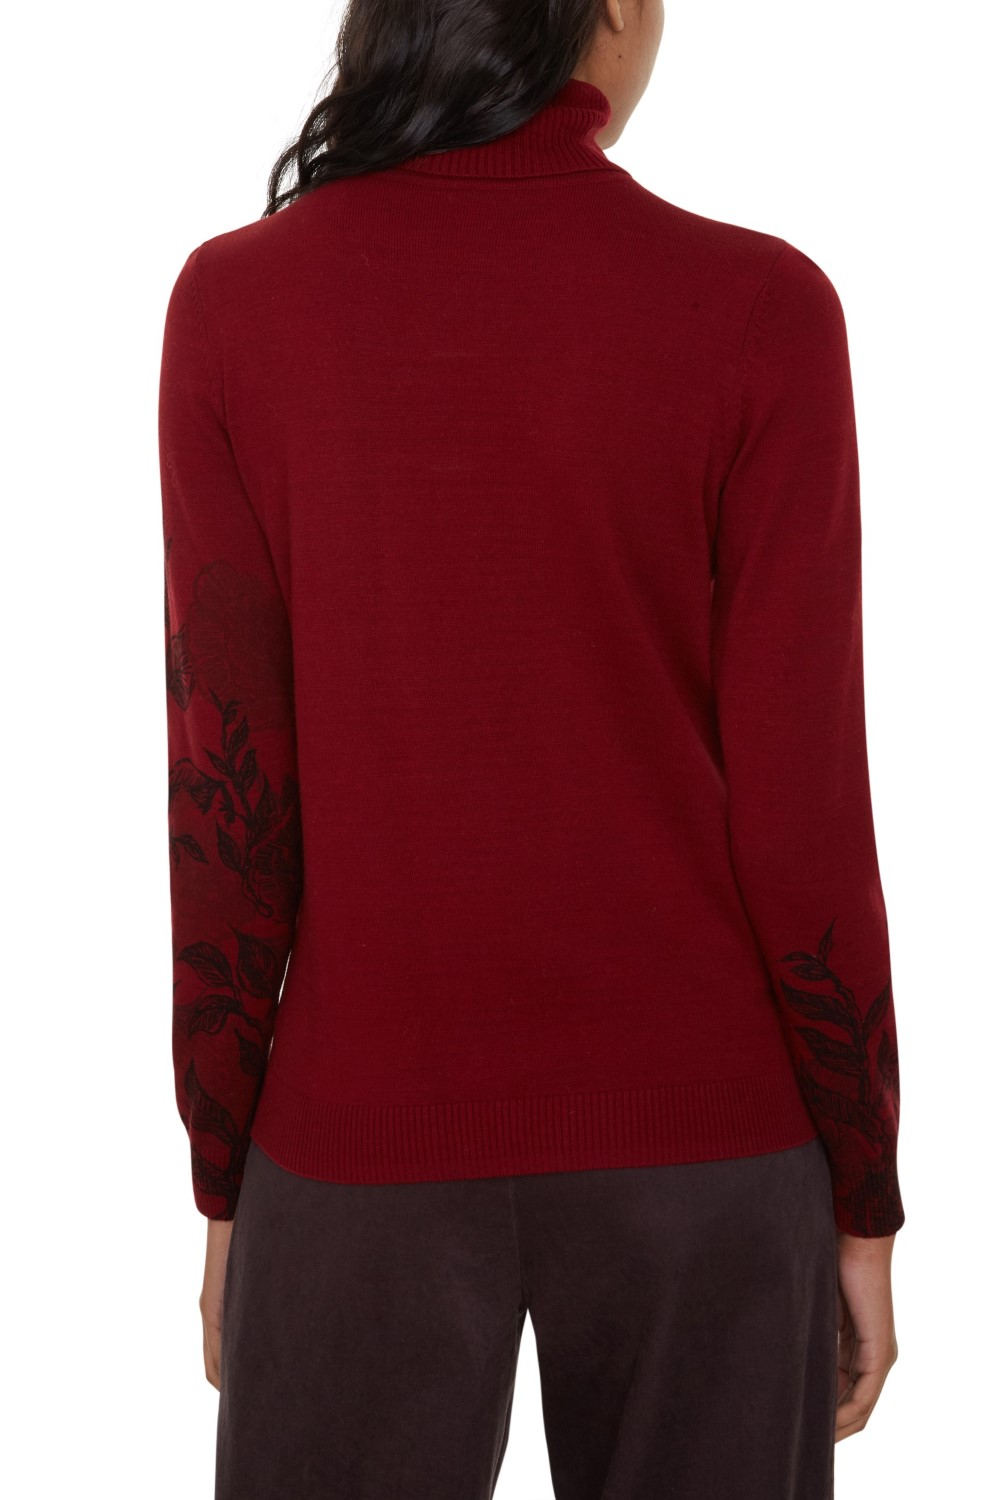 Wine-Coloured Desigual Polo Neck Sweater Jers Garden